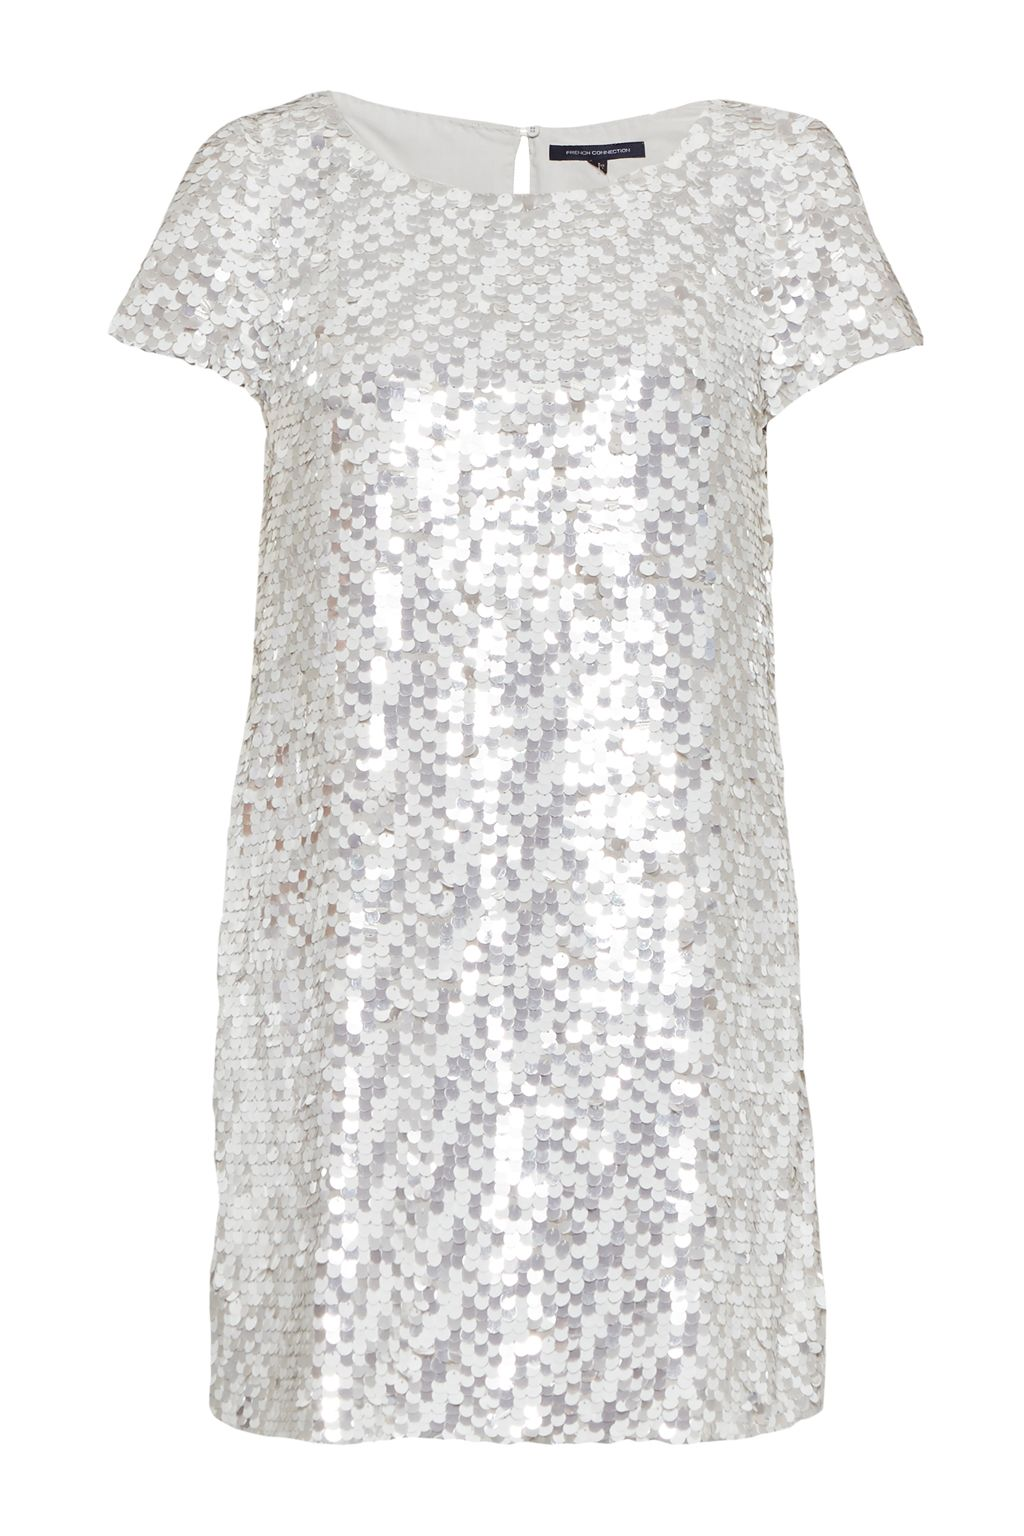 French Connection Snow Sequins Tunic Dress, Grey